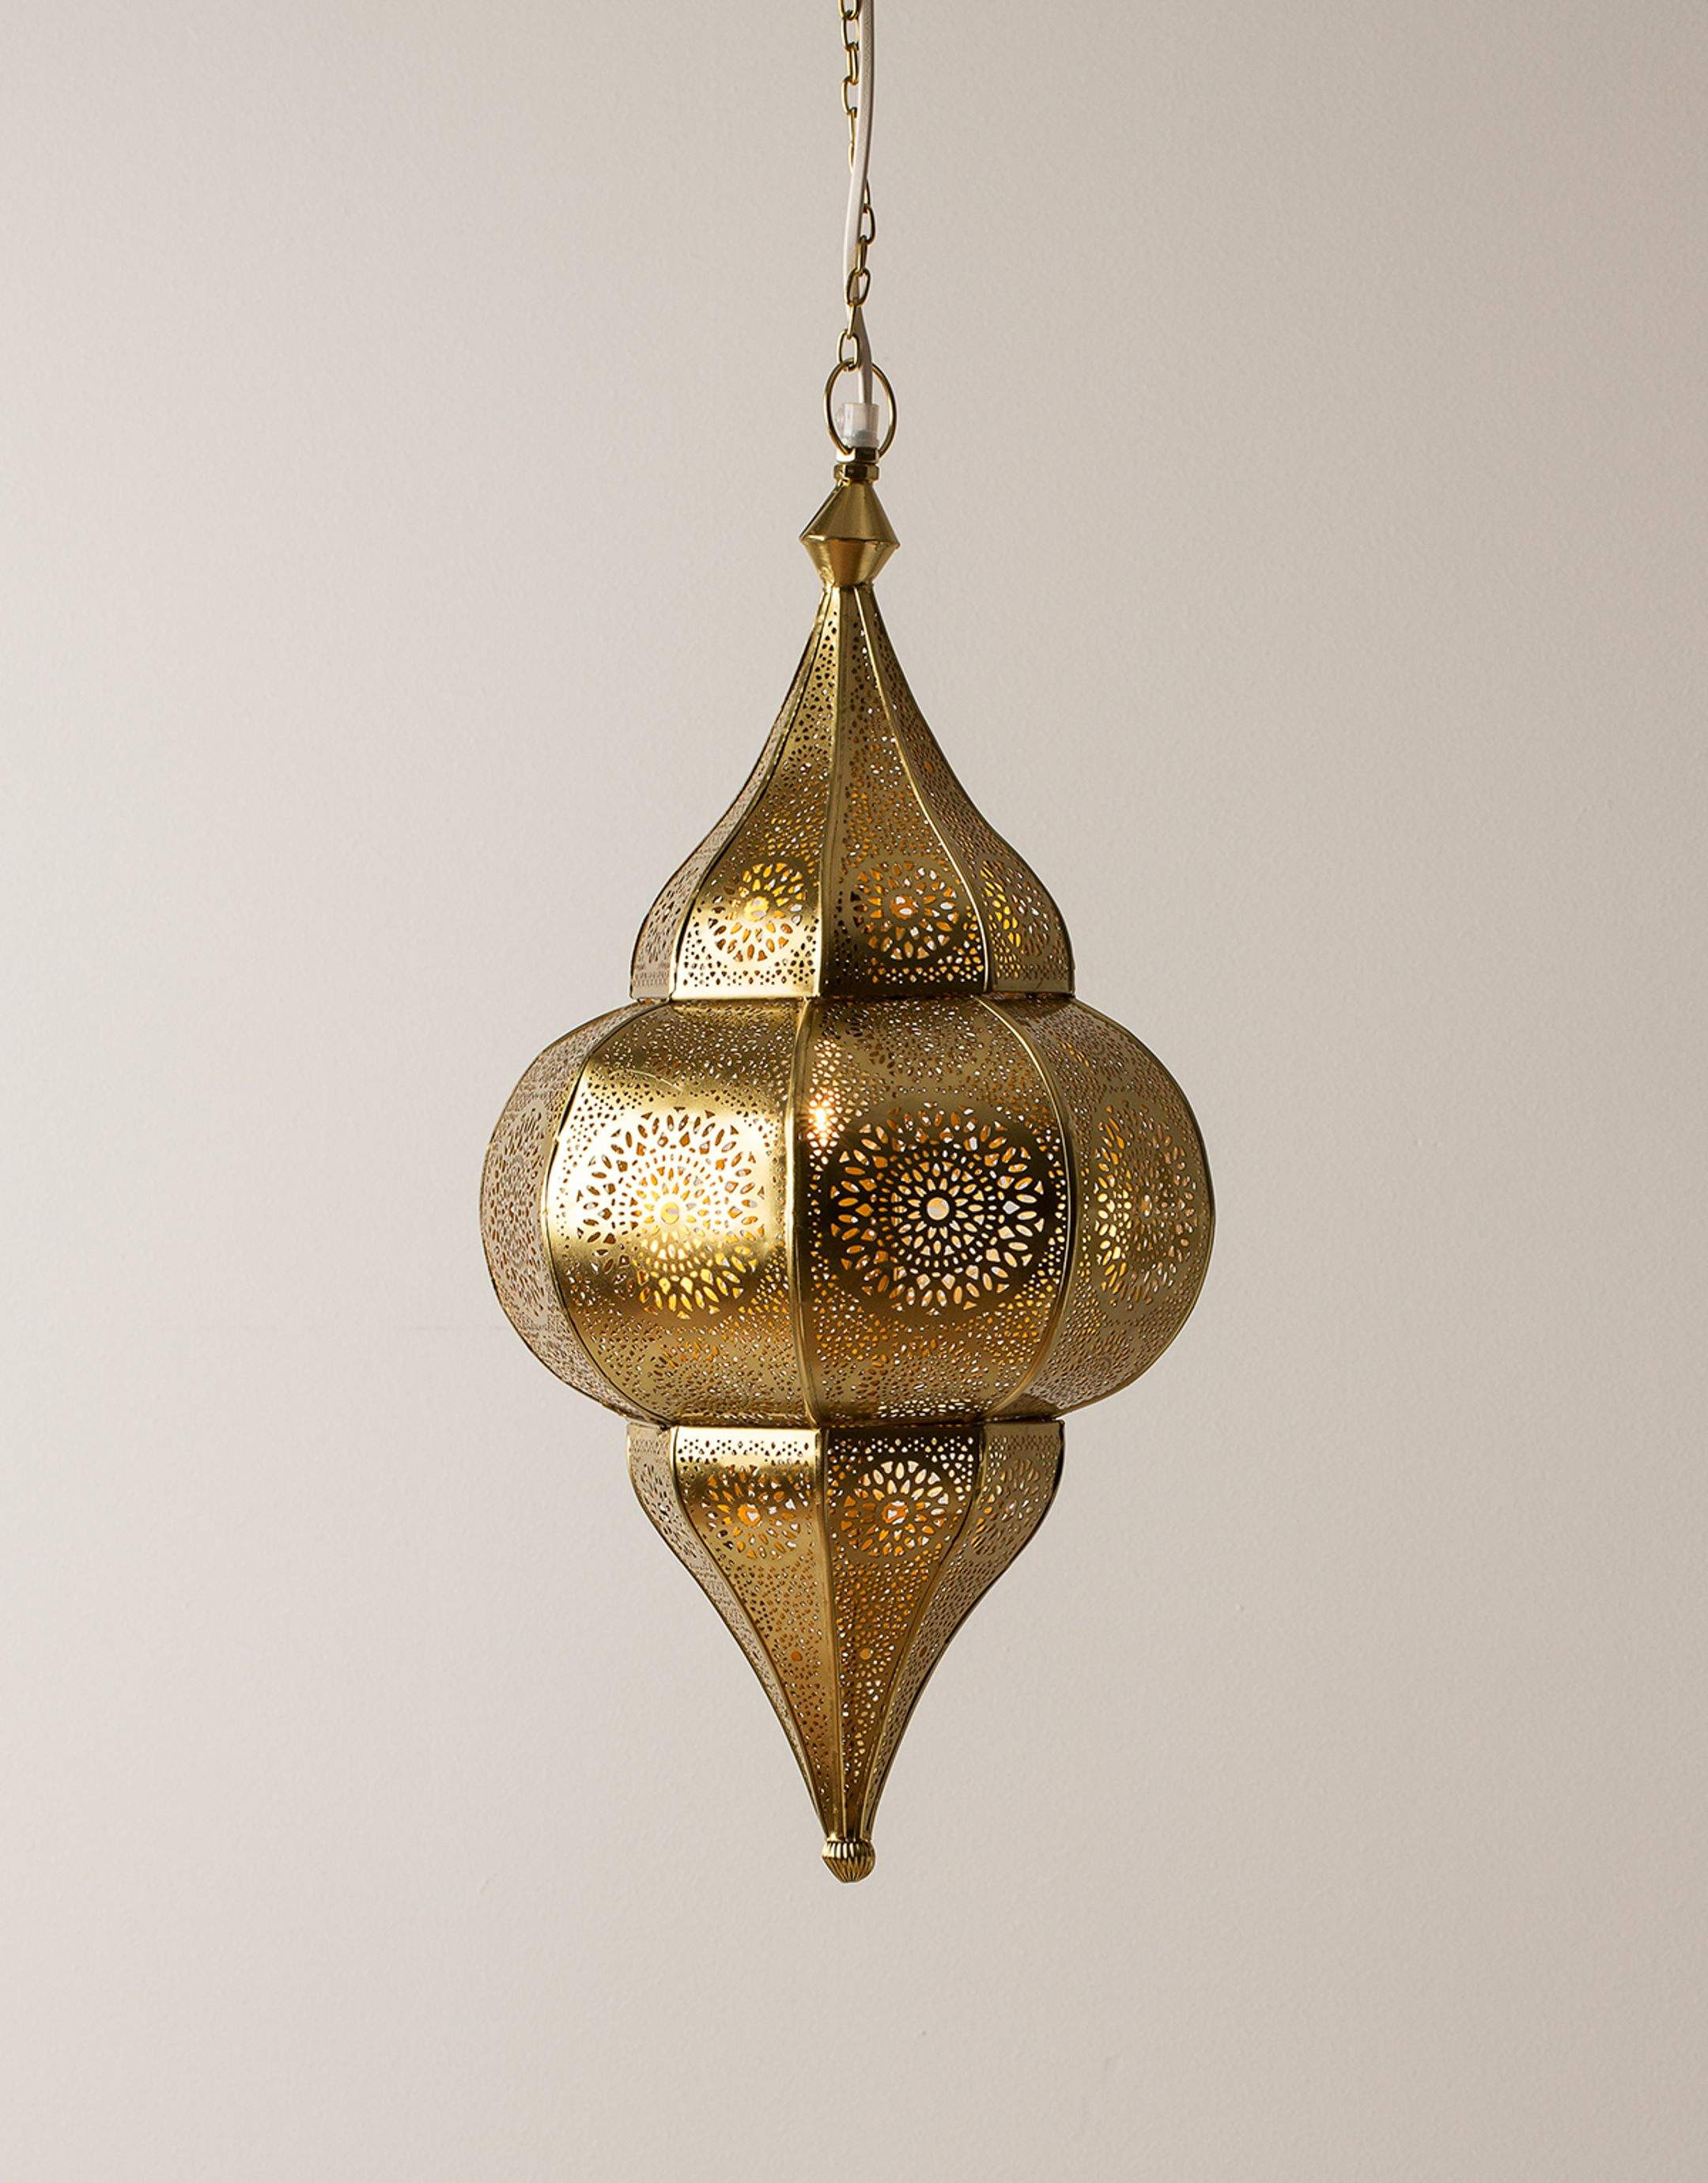 Hanging Fixtures China Moroccan Geometric Sphere Metal Hollowing Flower Arabic Design Ceiling Pendant Lighting